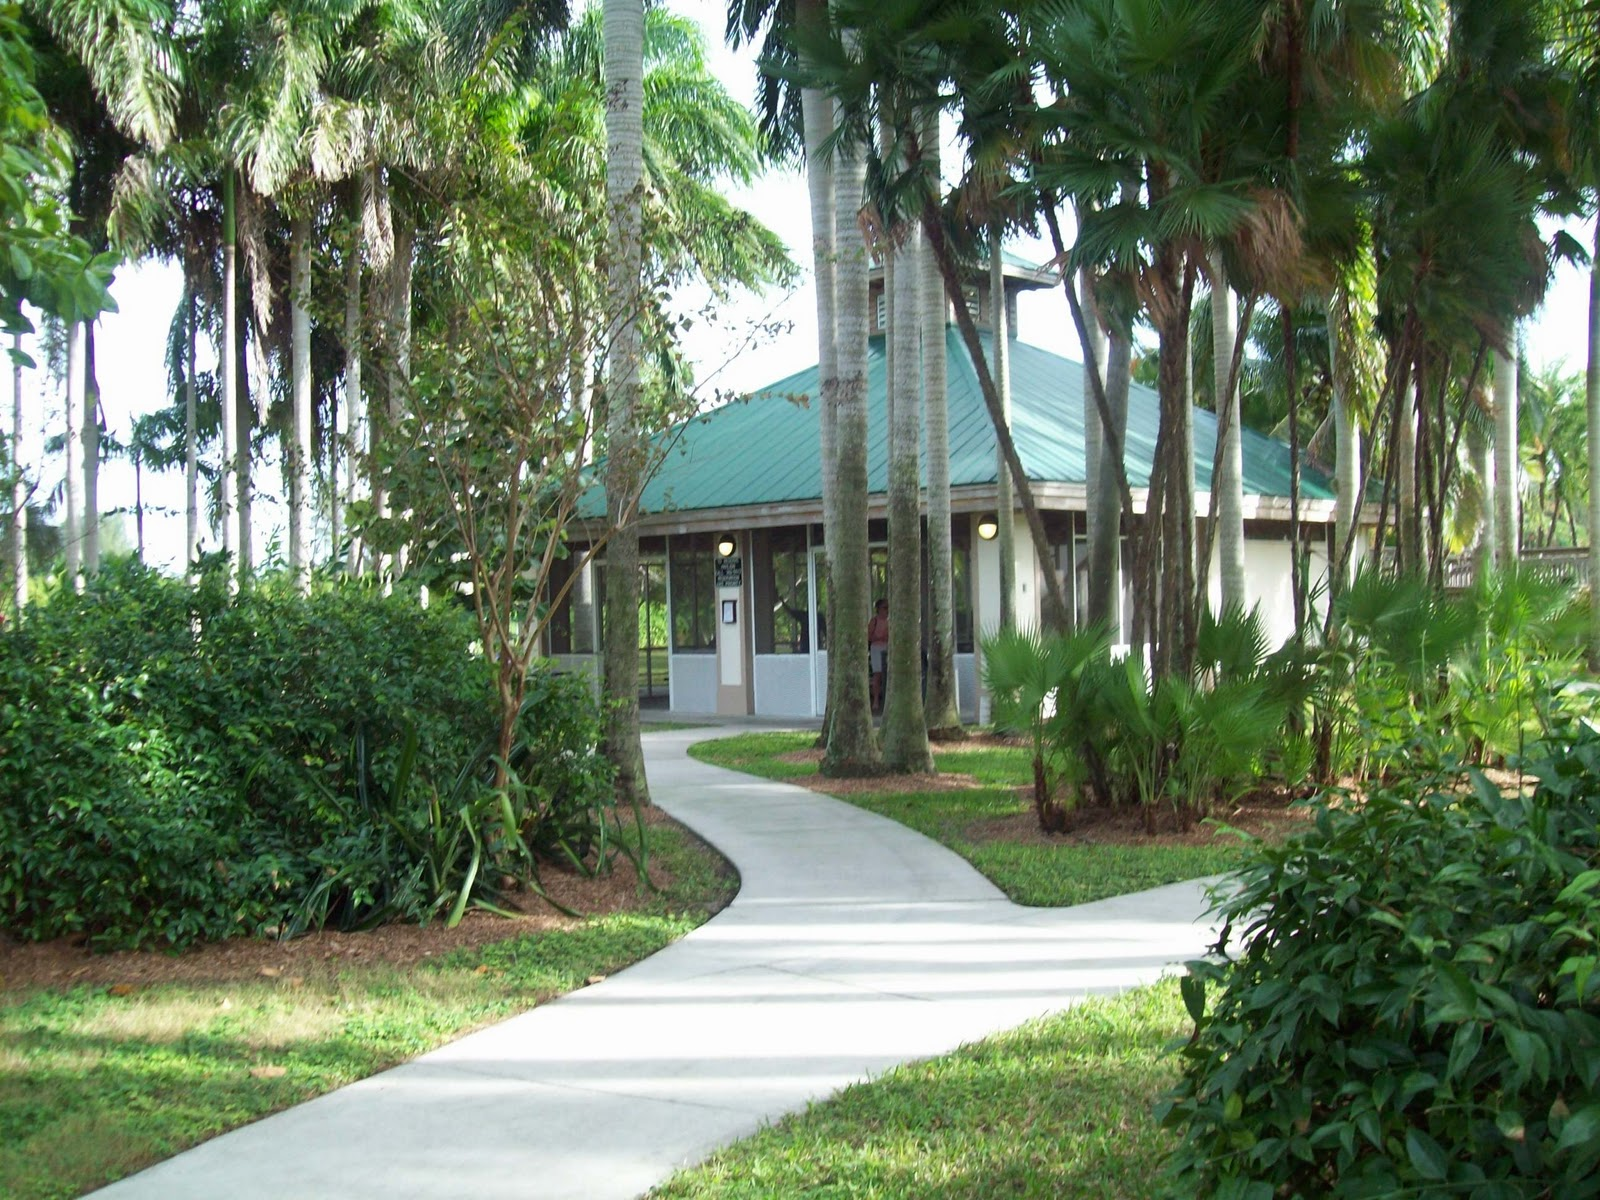 The Complex Has A Playground With Benches And Pavilion That Is Available To For Events Through Manatee County Park Services Palma Sola